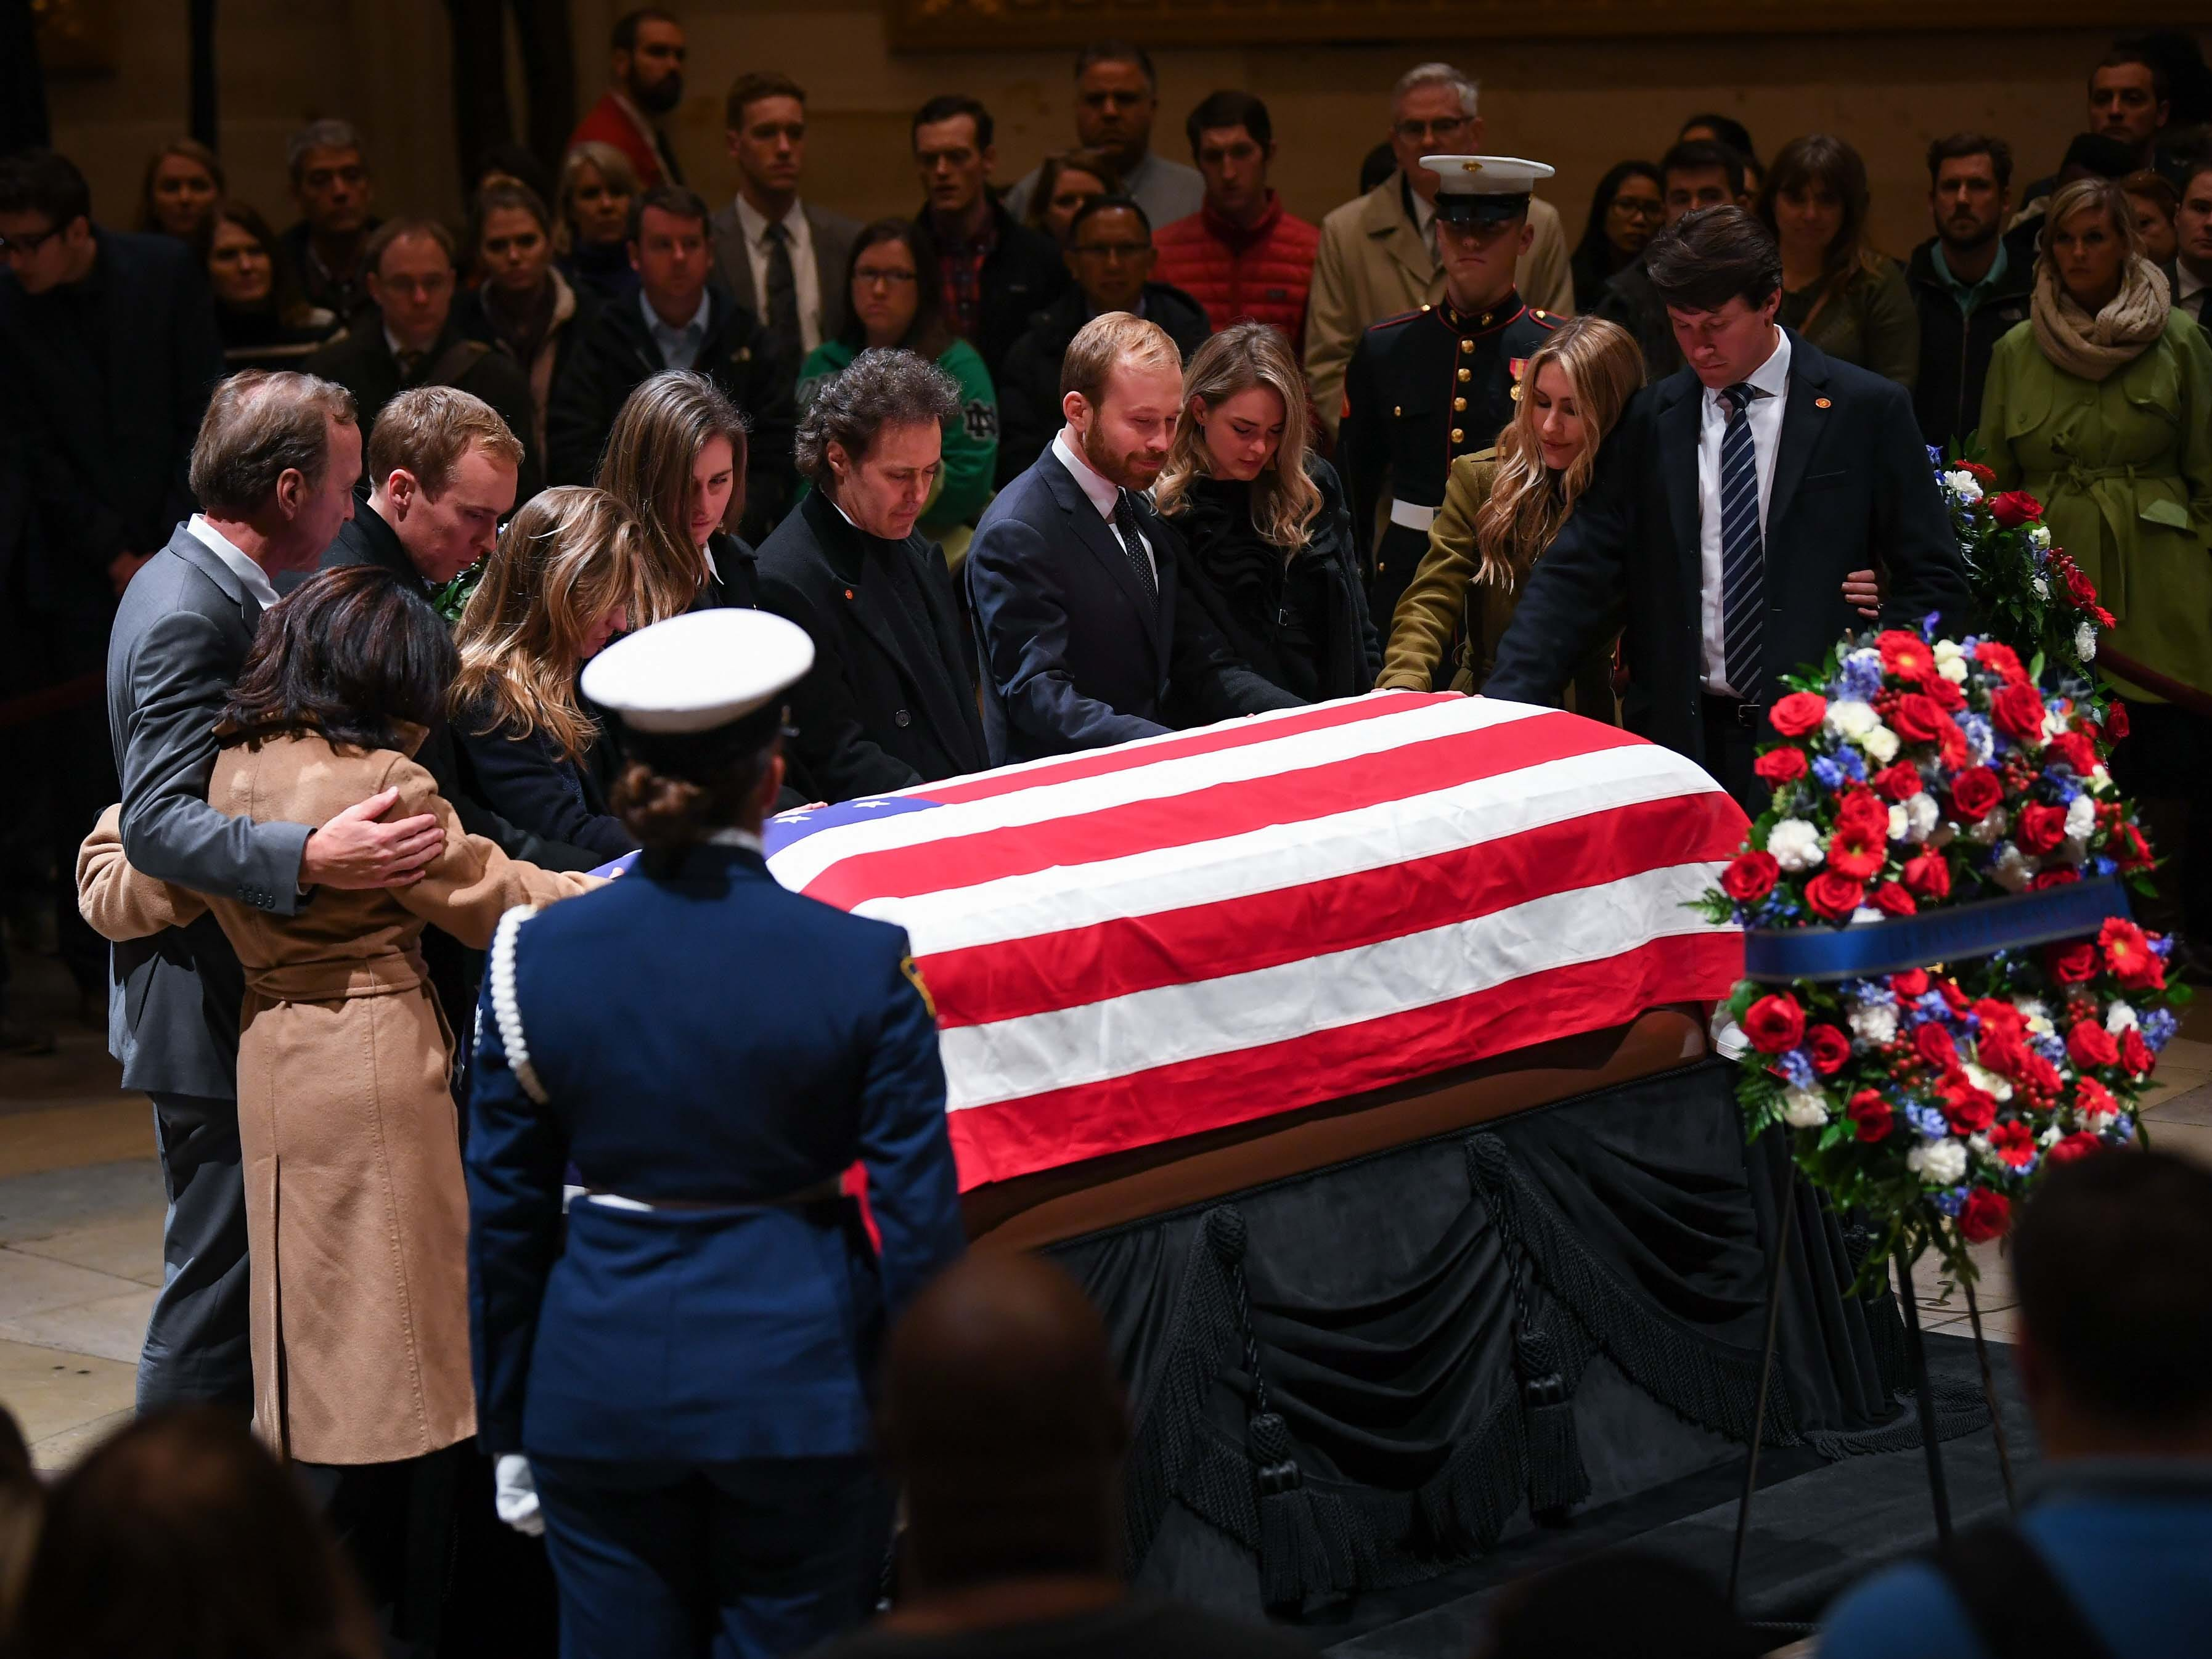 Neil Bush , left, pays his respects to his father President George H.W. Bush along with his family as the former President lies in state at the U.S. Capitol Rotunda.